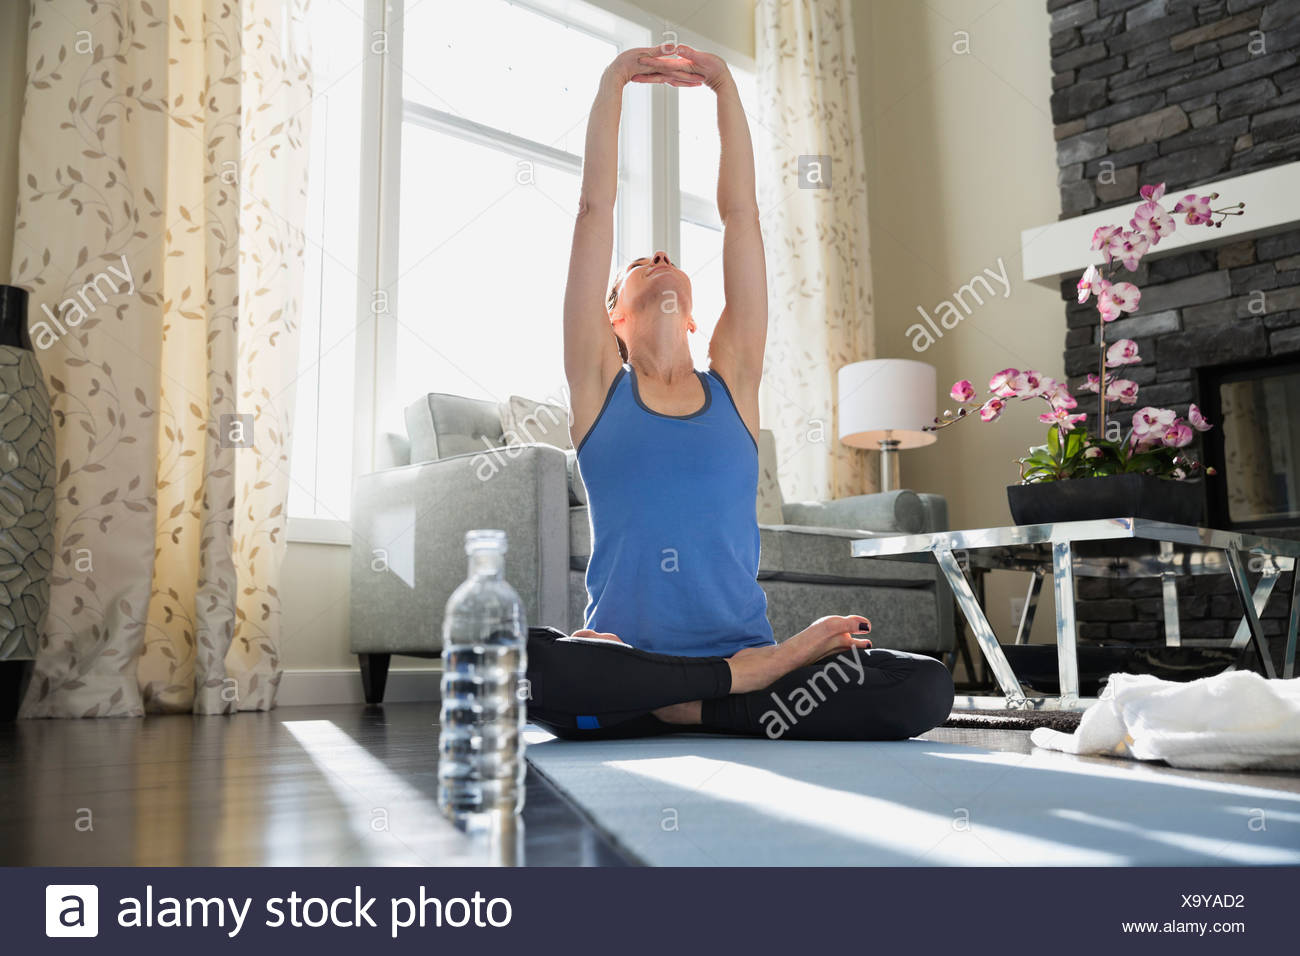 Mature woman with arms raised doing yoga on mat - Stock Image